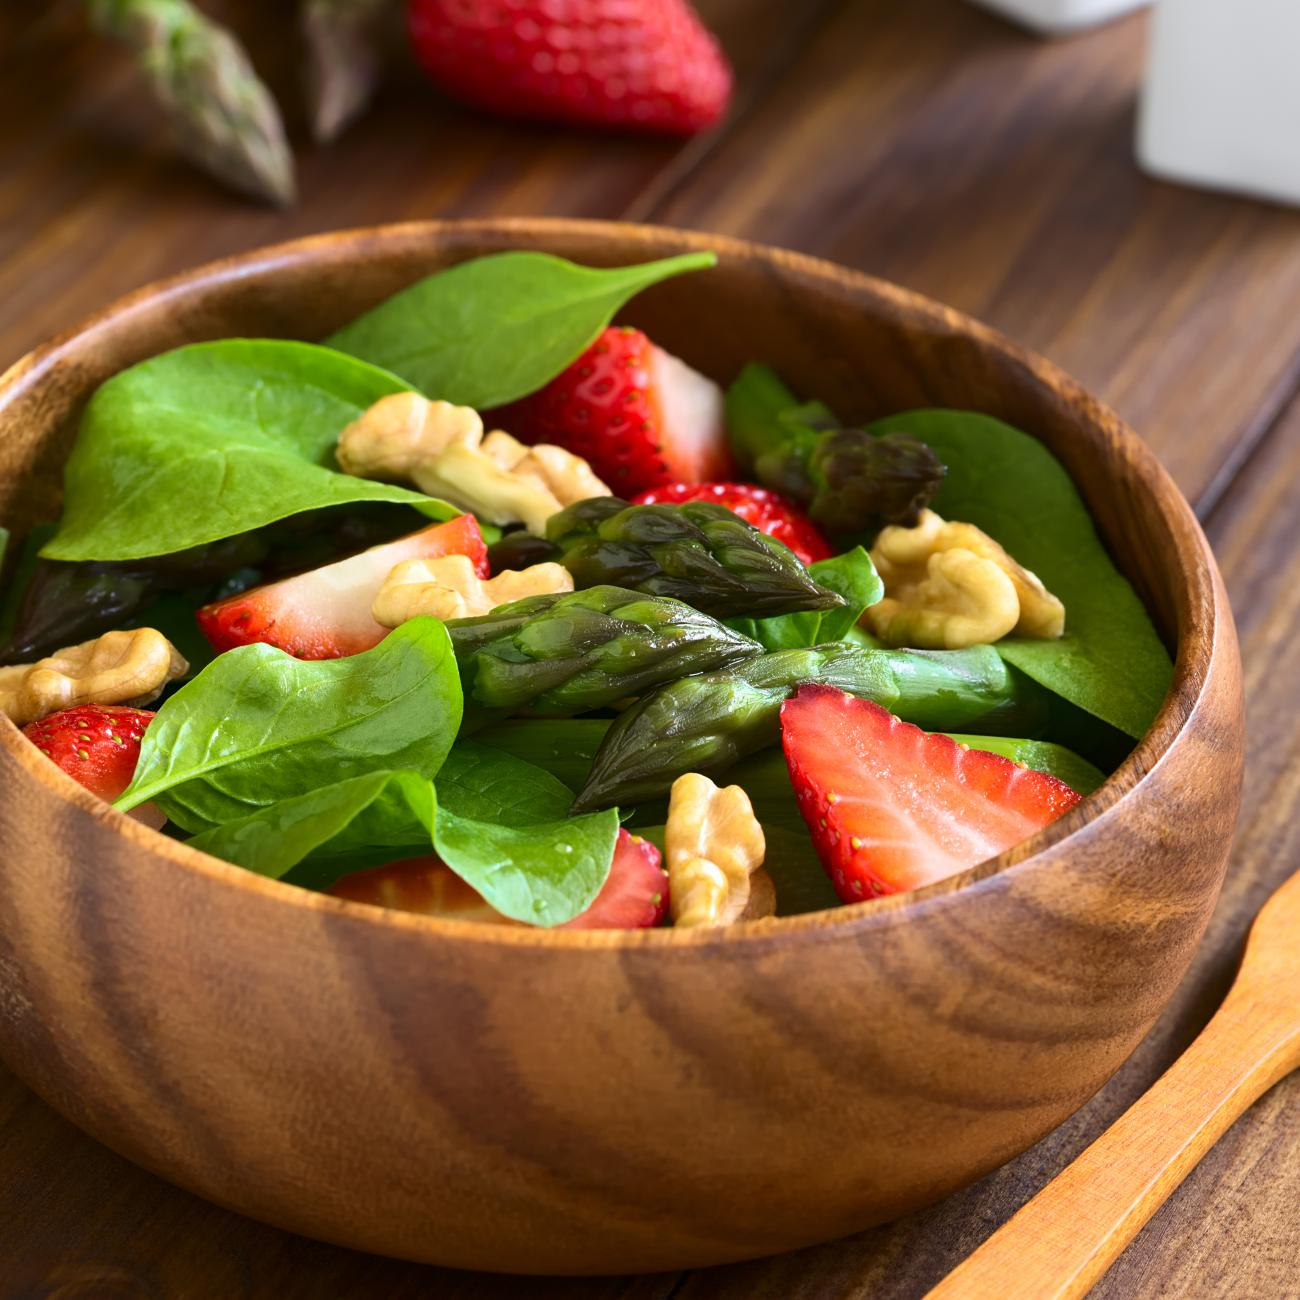 Recipe for Strawberry and Spinach Salad